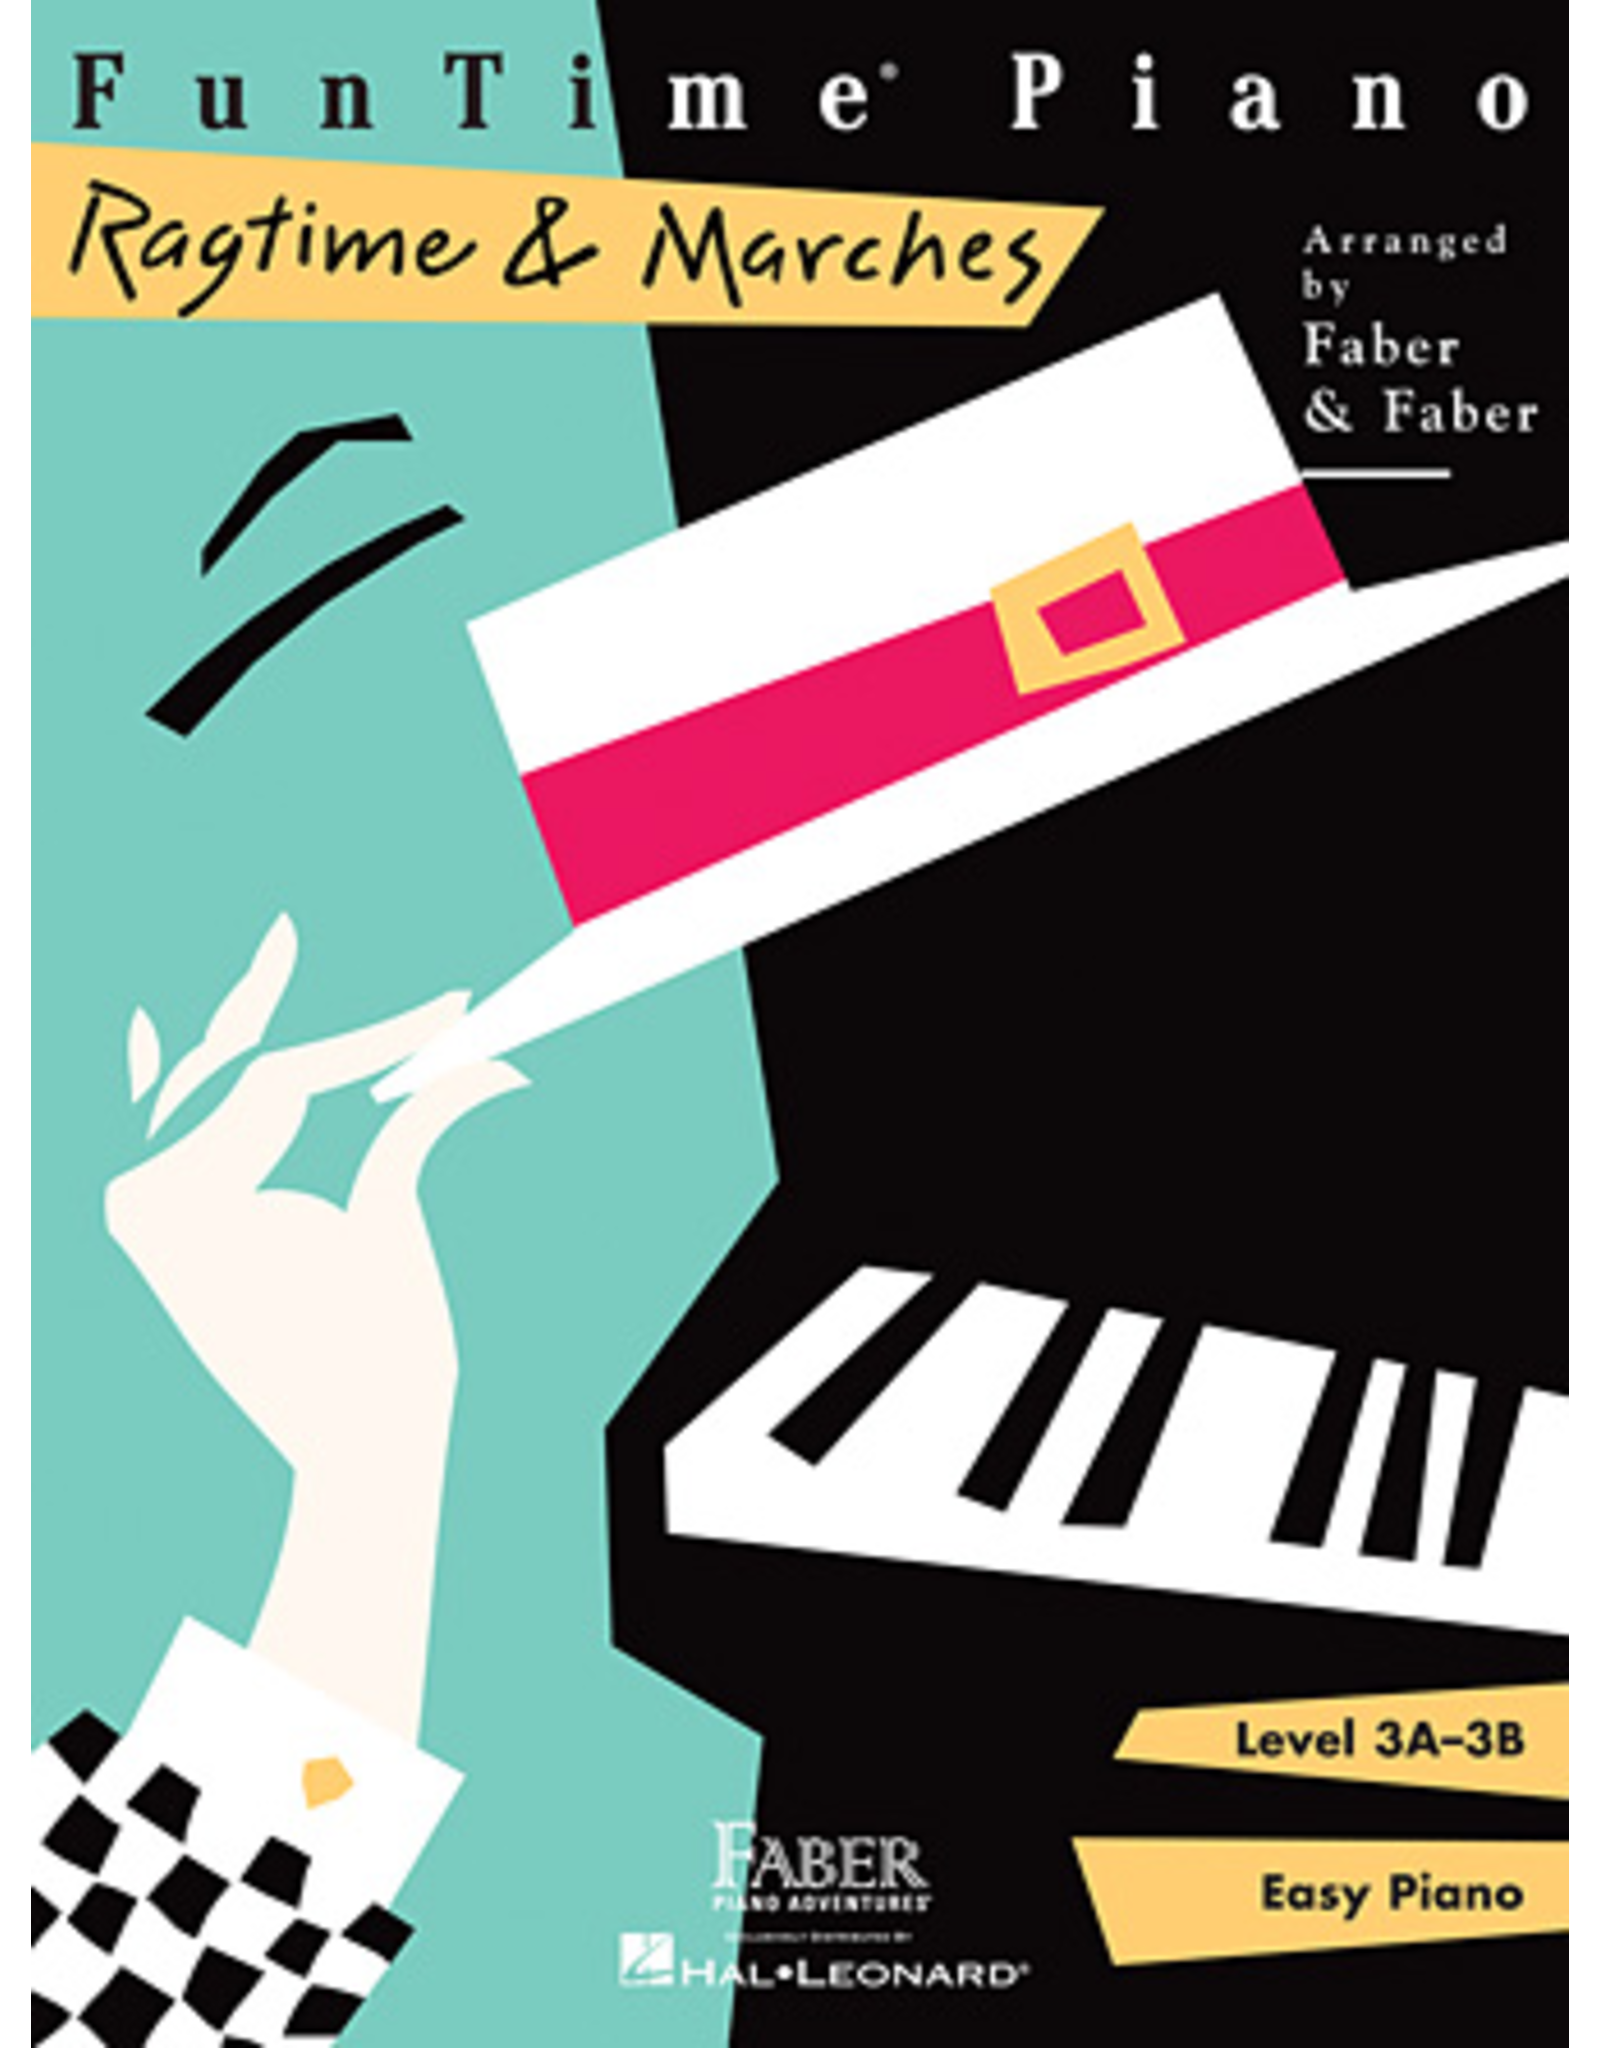 Hal Leonard FunTime Piano Ragtime & Marches Level 3A-3B